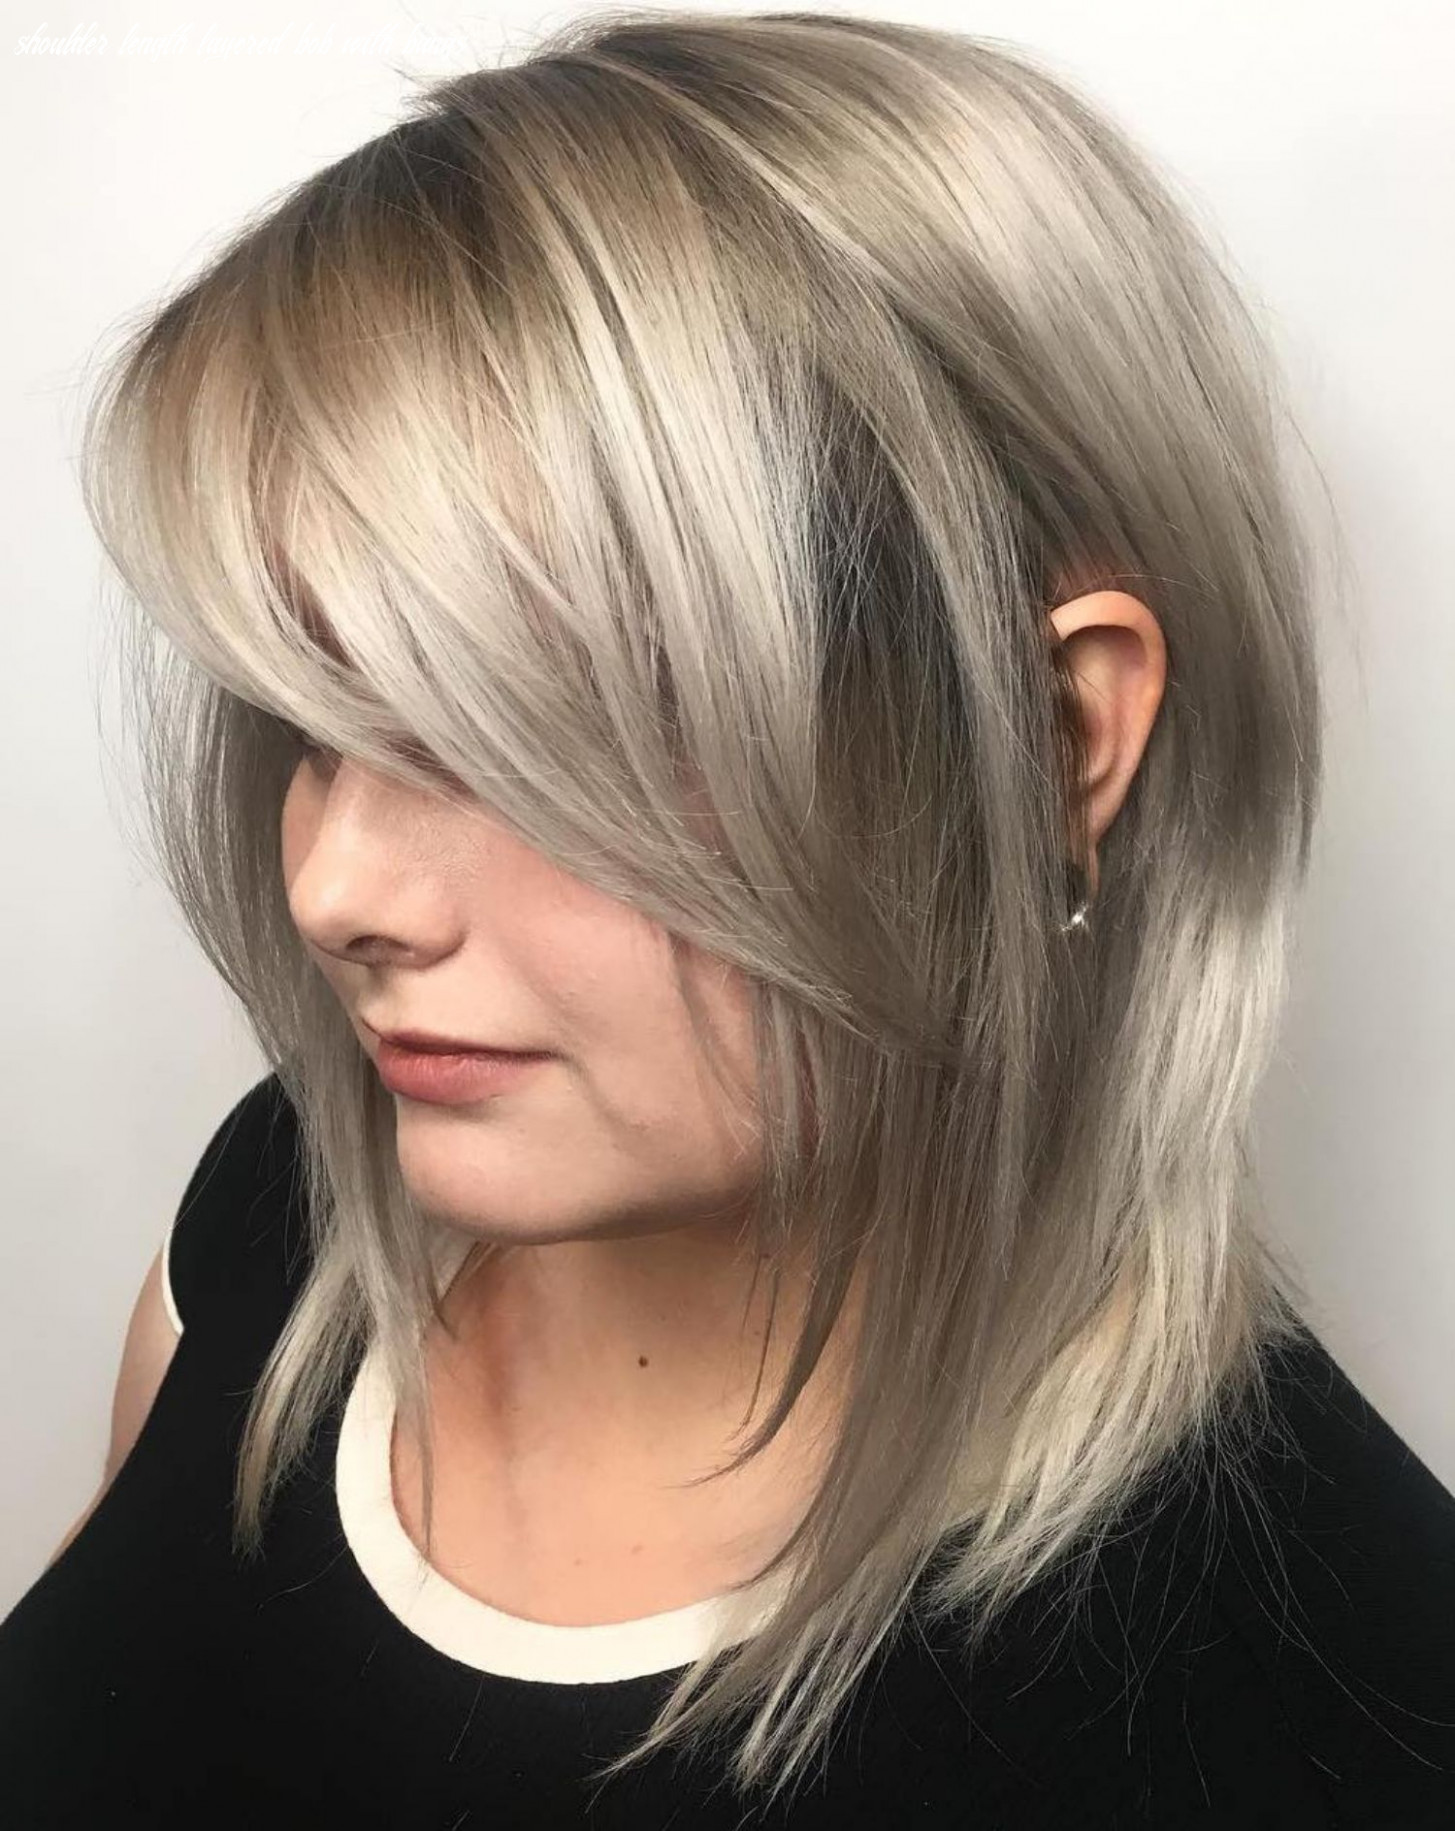 8 Side-Swept Bangs to Sweep You off Your Feet | Medium length ...